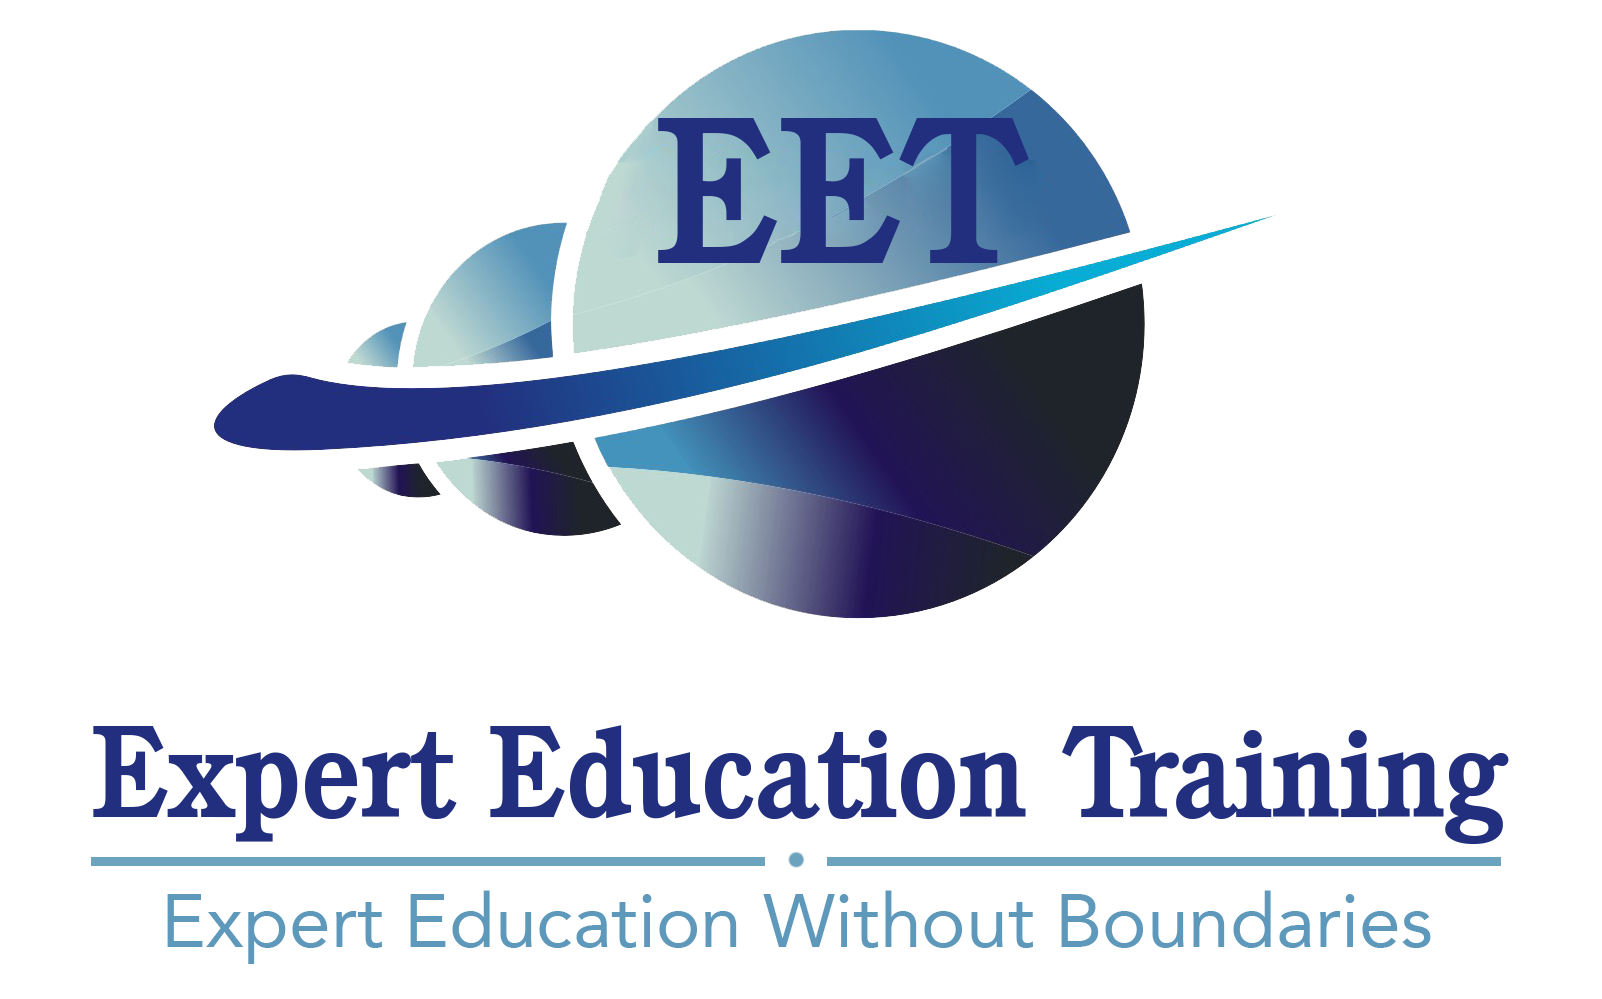 Expert Education Training